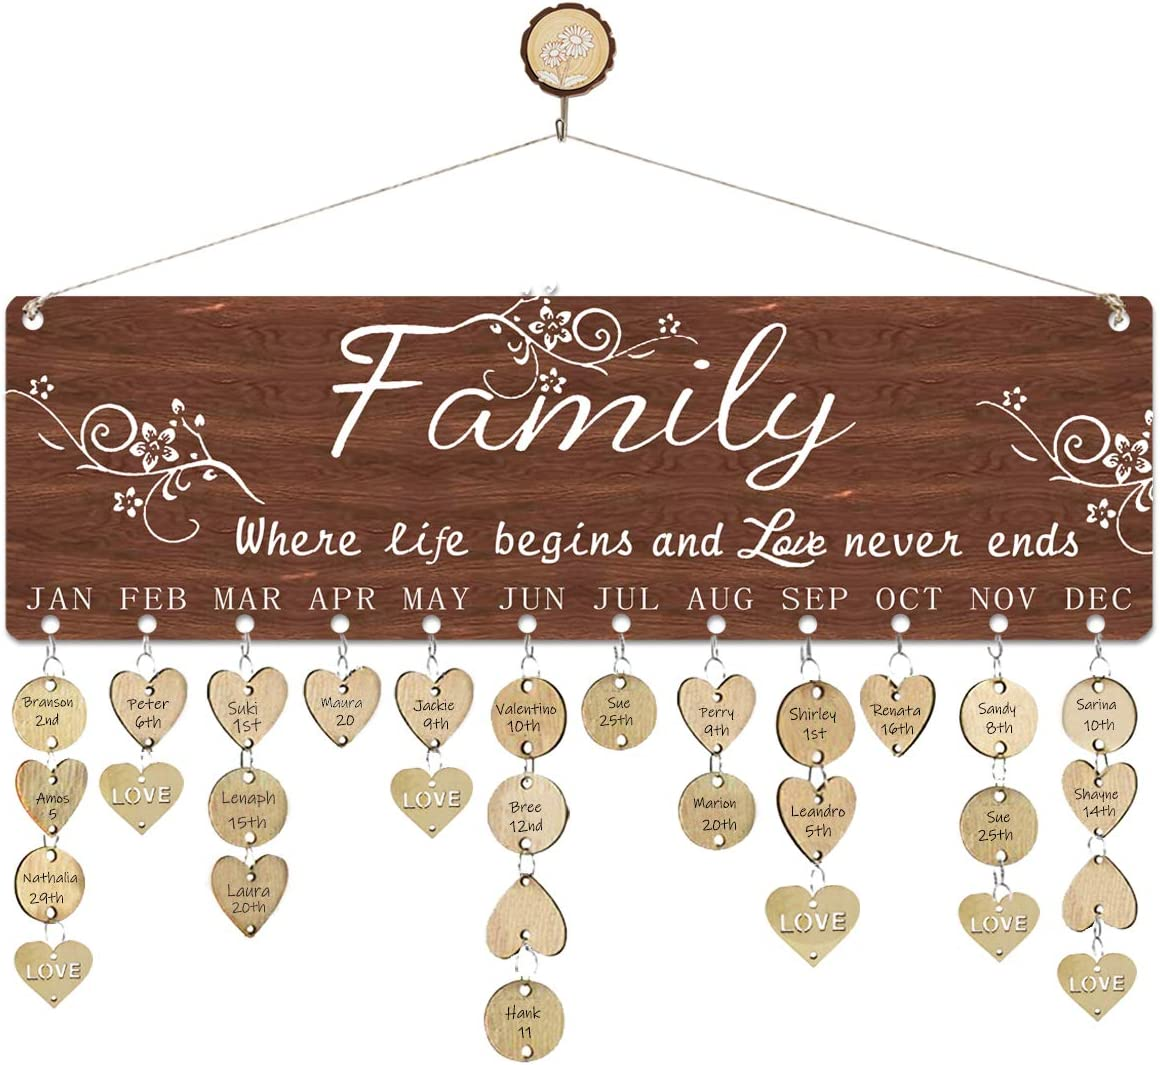 WISIEW Thanksgiving Gifts for Mom Dad Wooden Birthday Reminder Calendar Board Family Love Sayings Pattern Home Decorative Birthday Tracker Plaque Wall Hanging